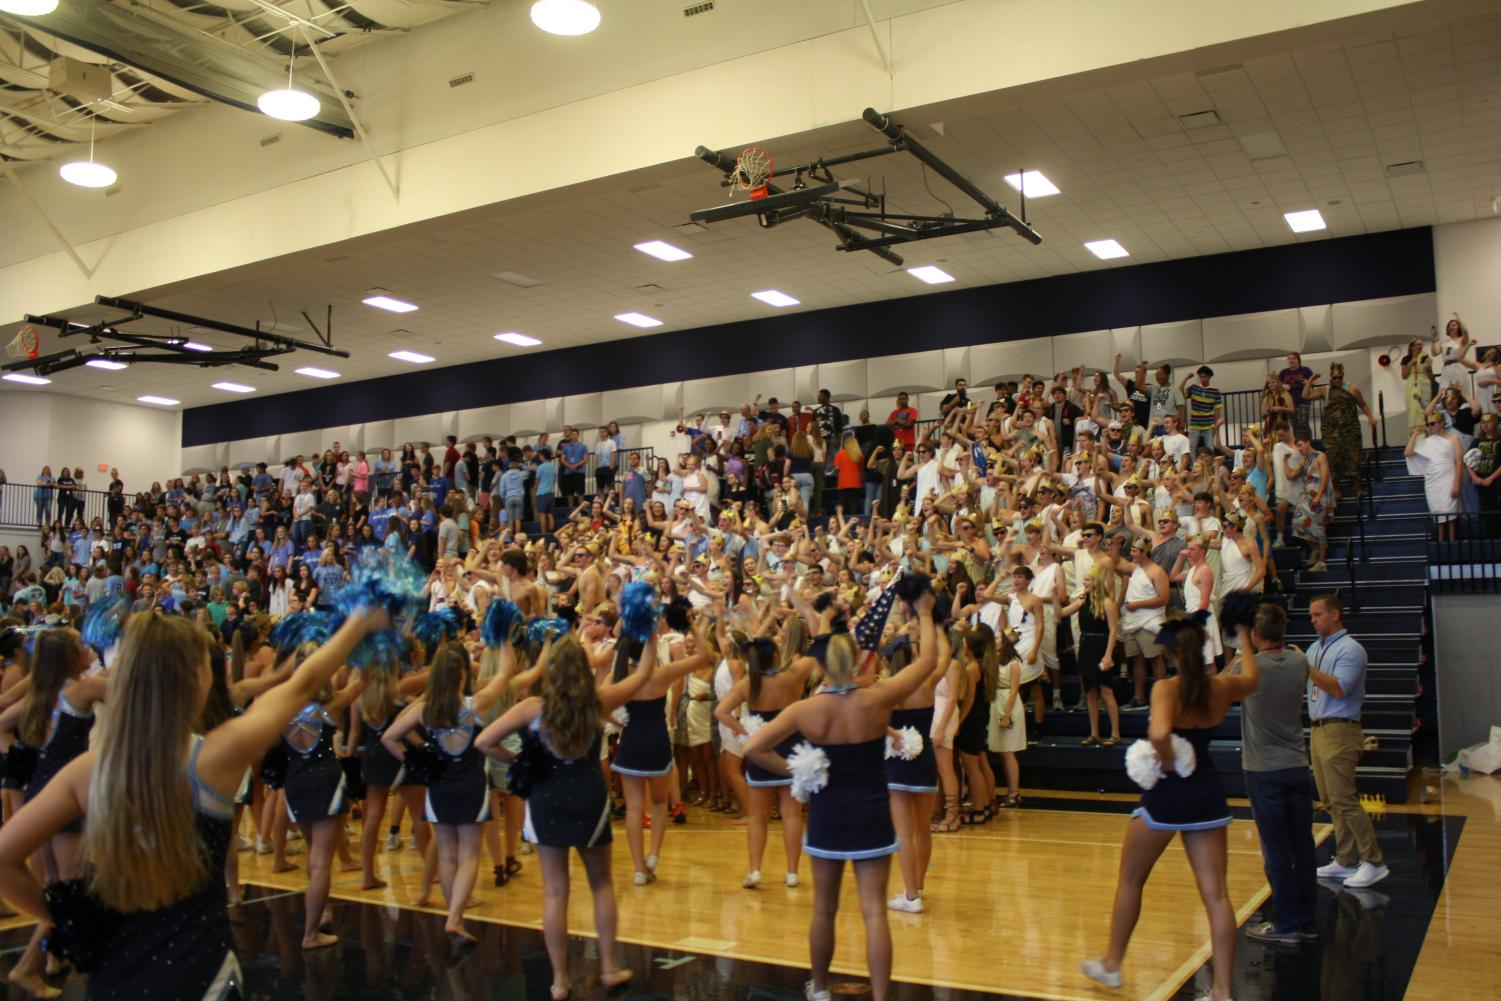 Time+for+the+%22Chapin+Cheer%22+Which+class+has+the+most+spirit%3F